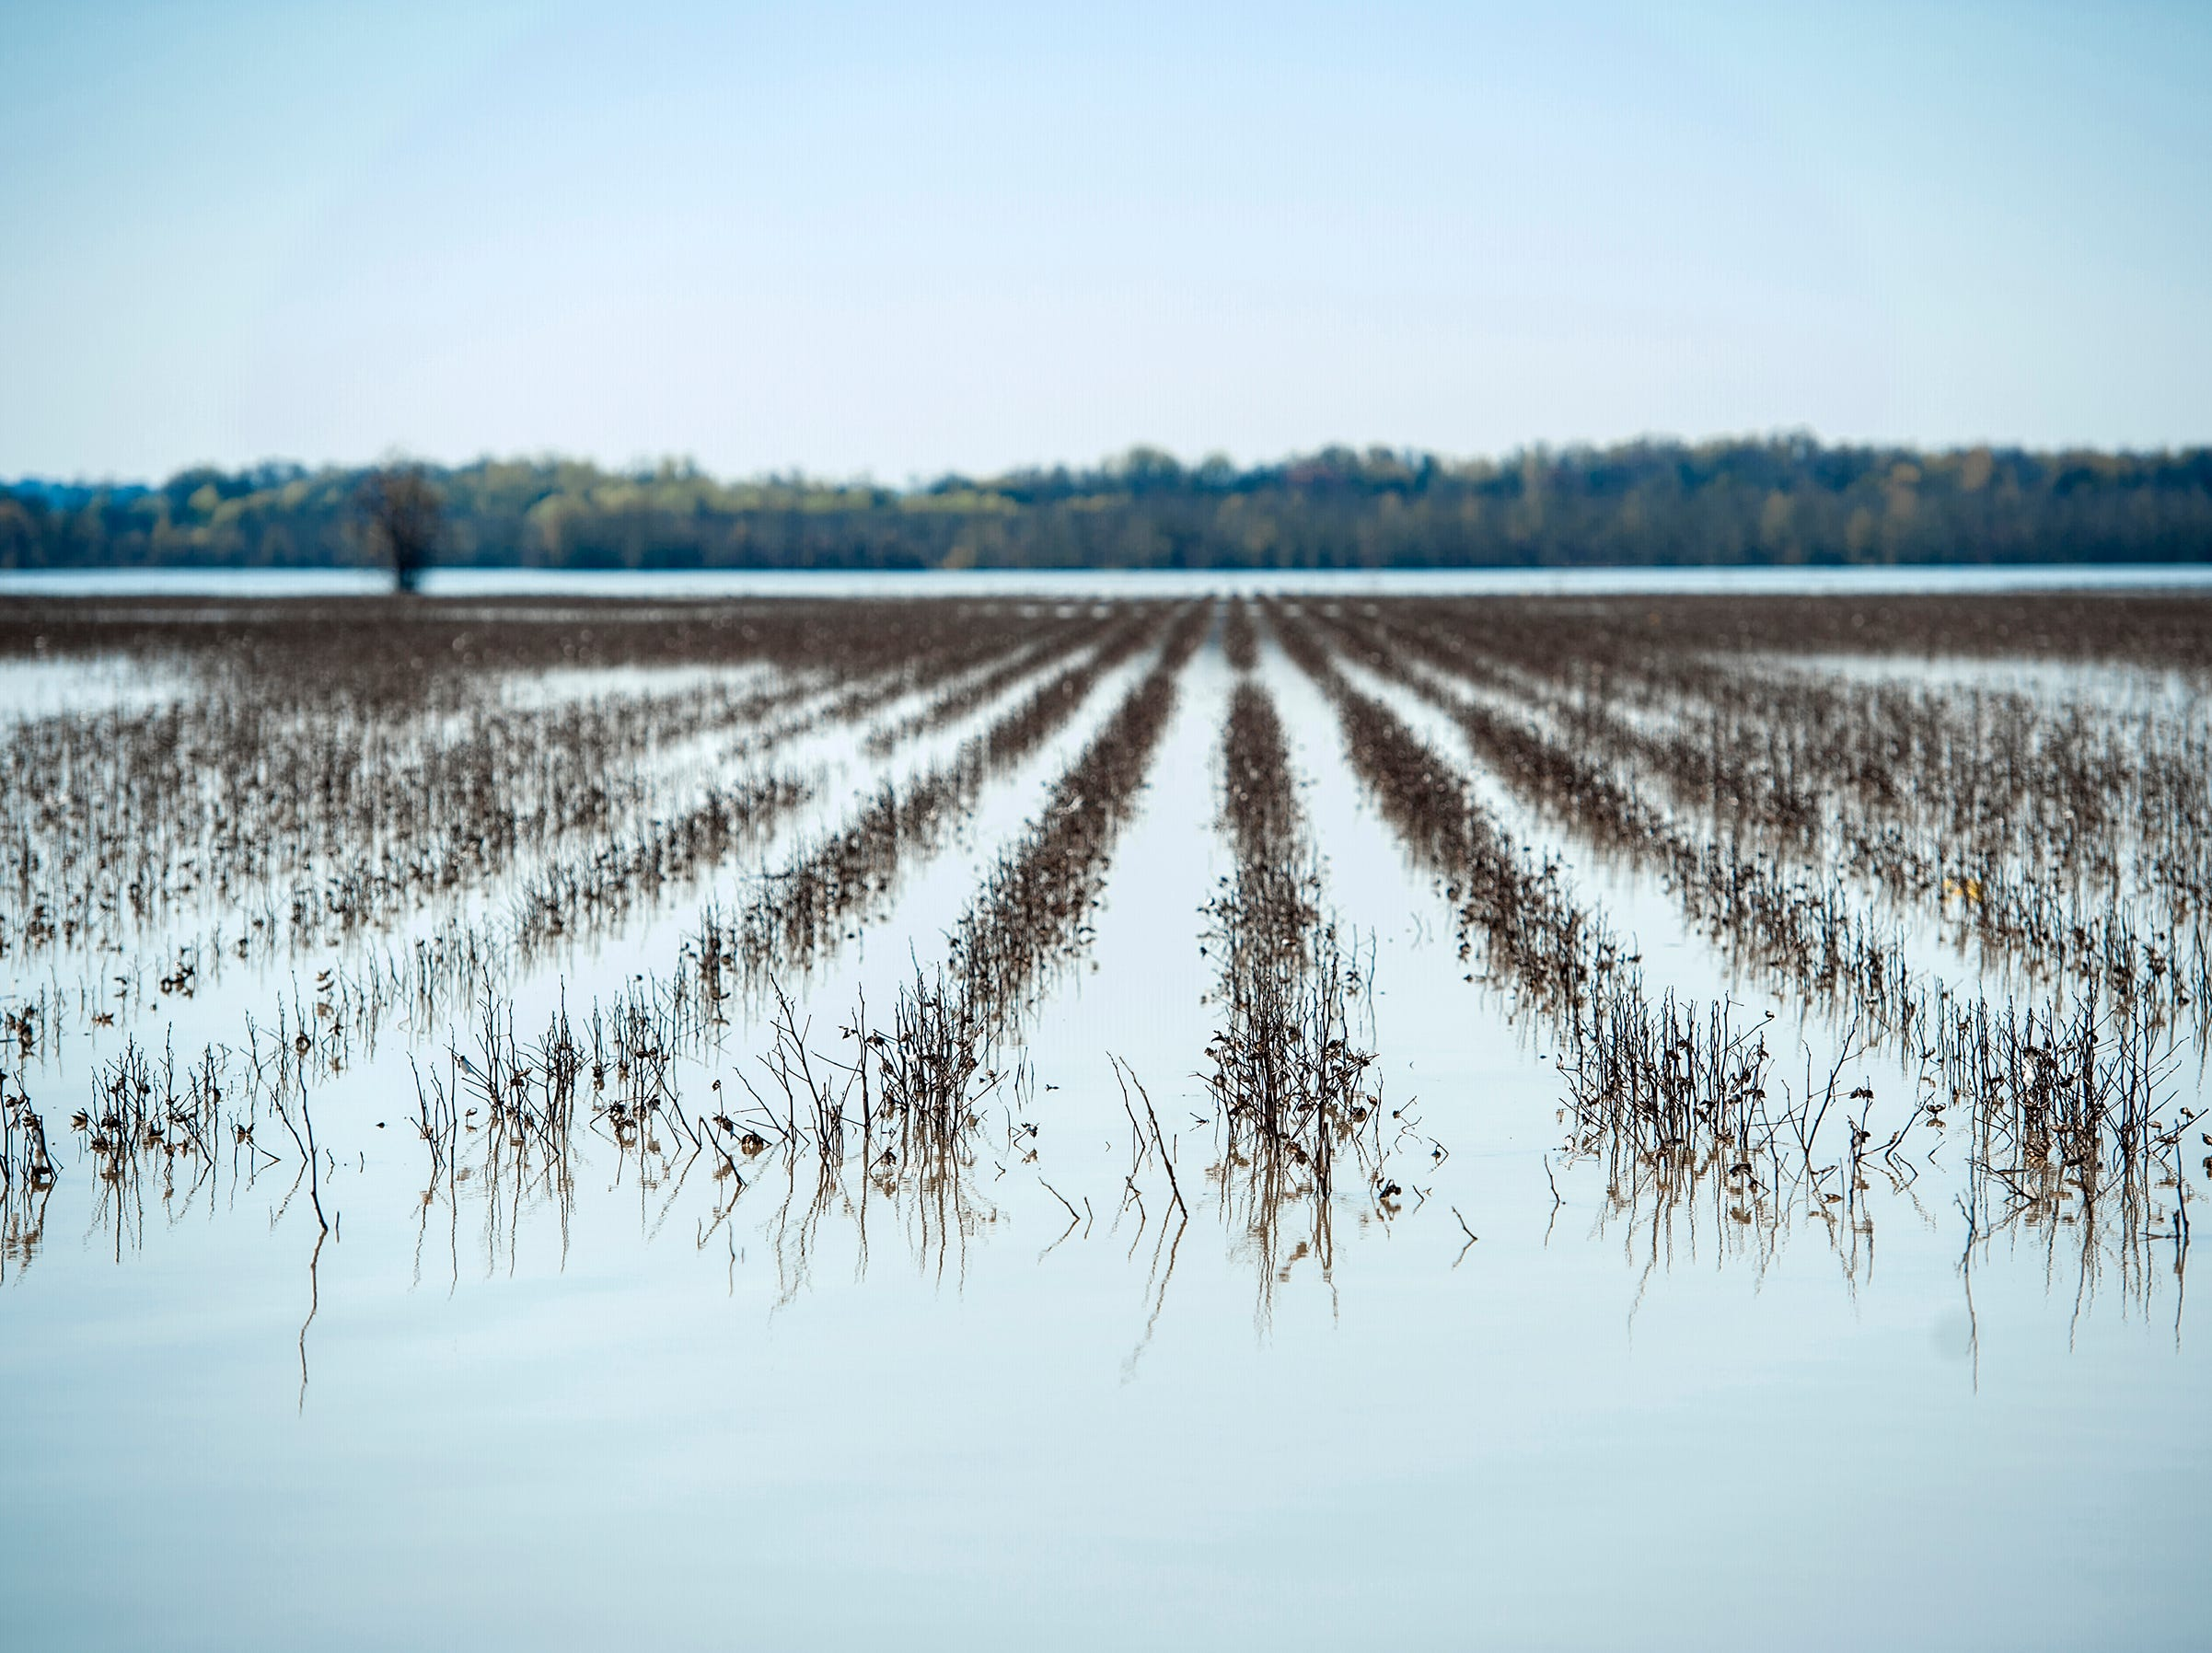 The tips of cotton plants poking from above the water are the only indication that what appears to be a lake is a farmer's field blanketed by flood waters along Floweree Road in Redwood.